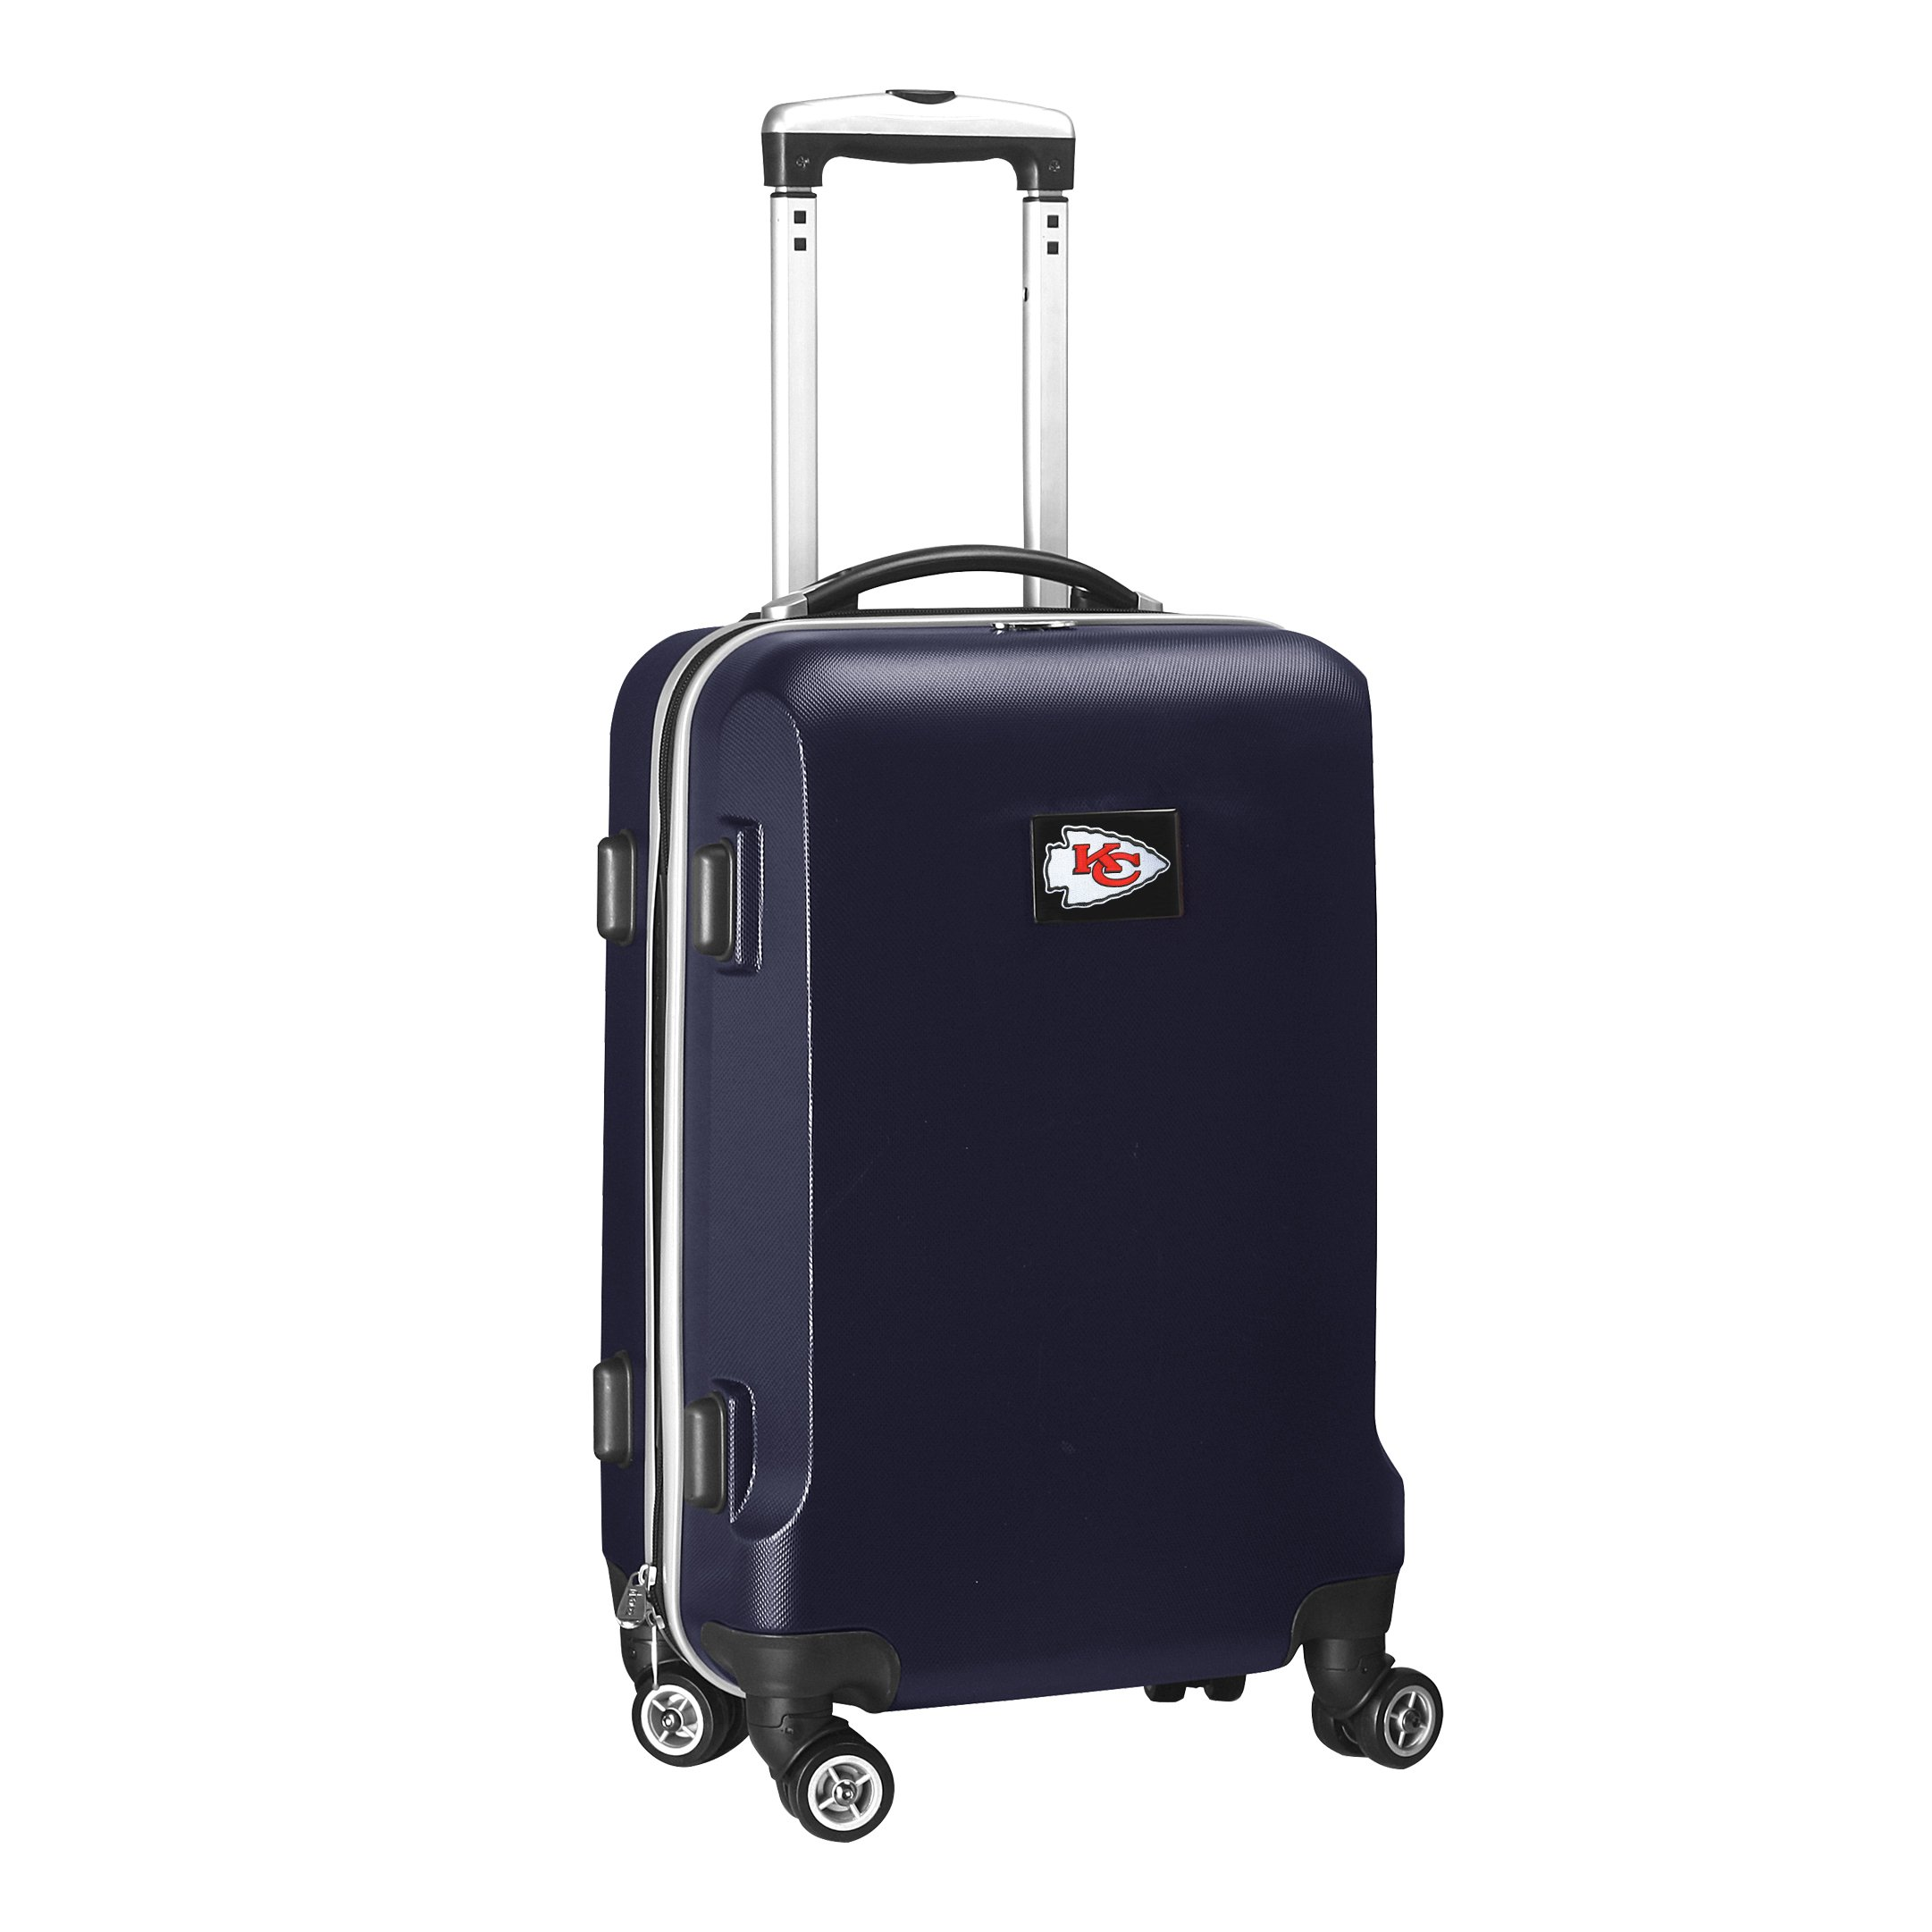 Denco NFL Kansas City Chiefs Carry-On Hardcase Luggage Spinner, Navy by Denco (Image #2)